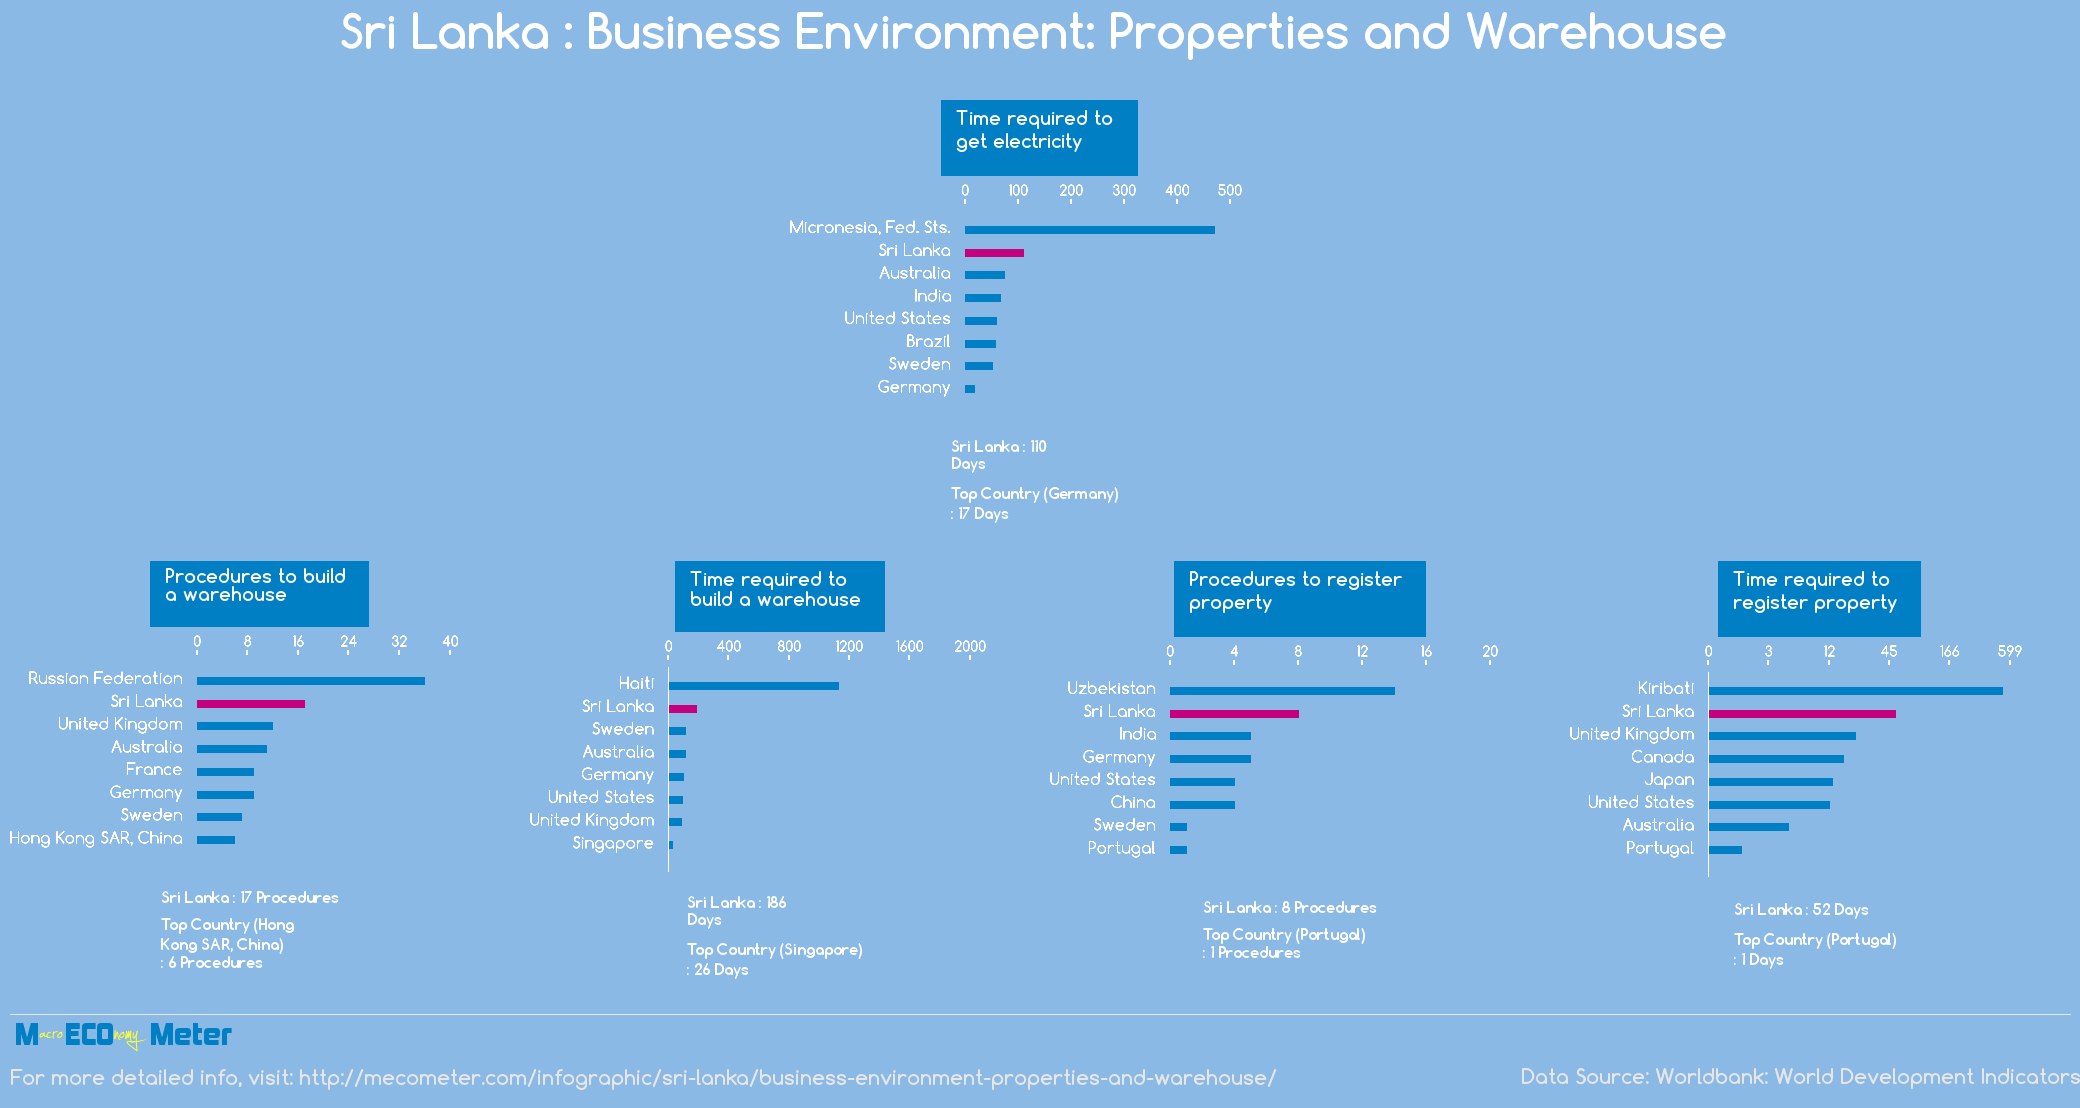 Sri Lanka : Business Environment: Properties and Warehouse